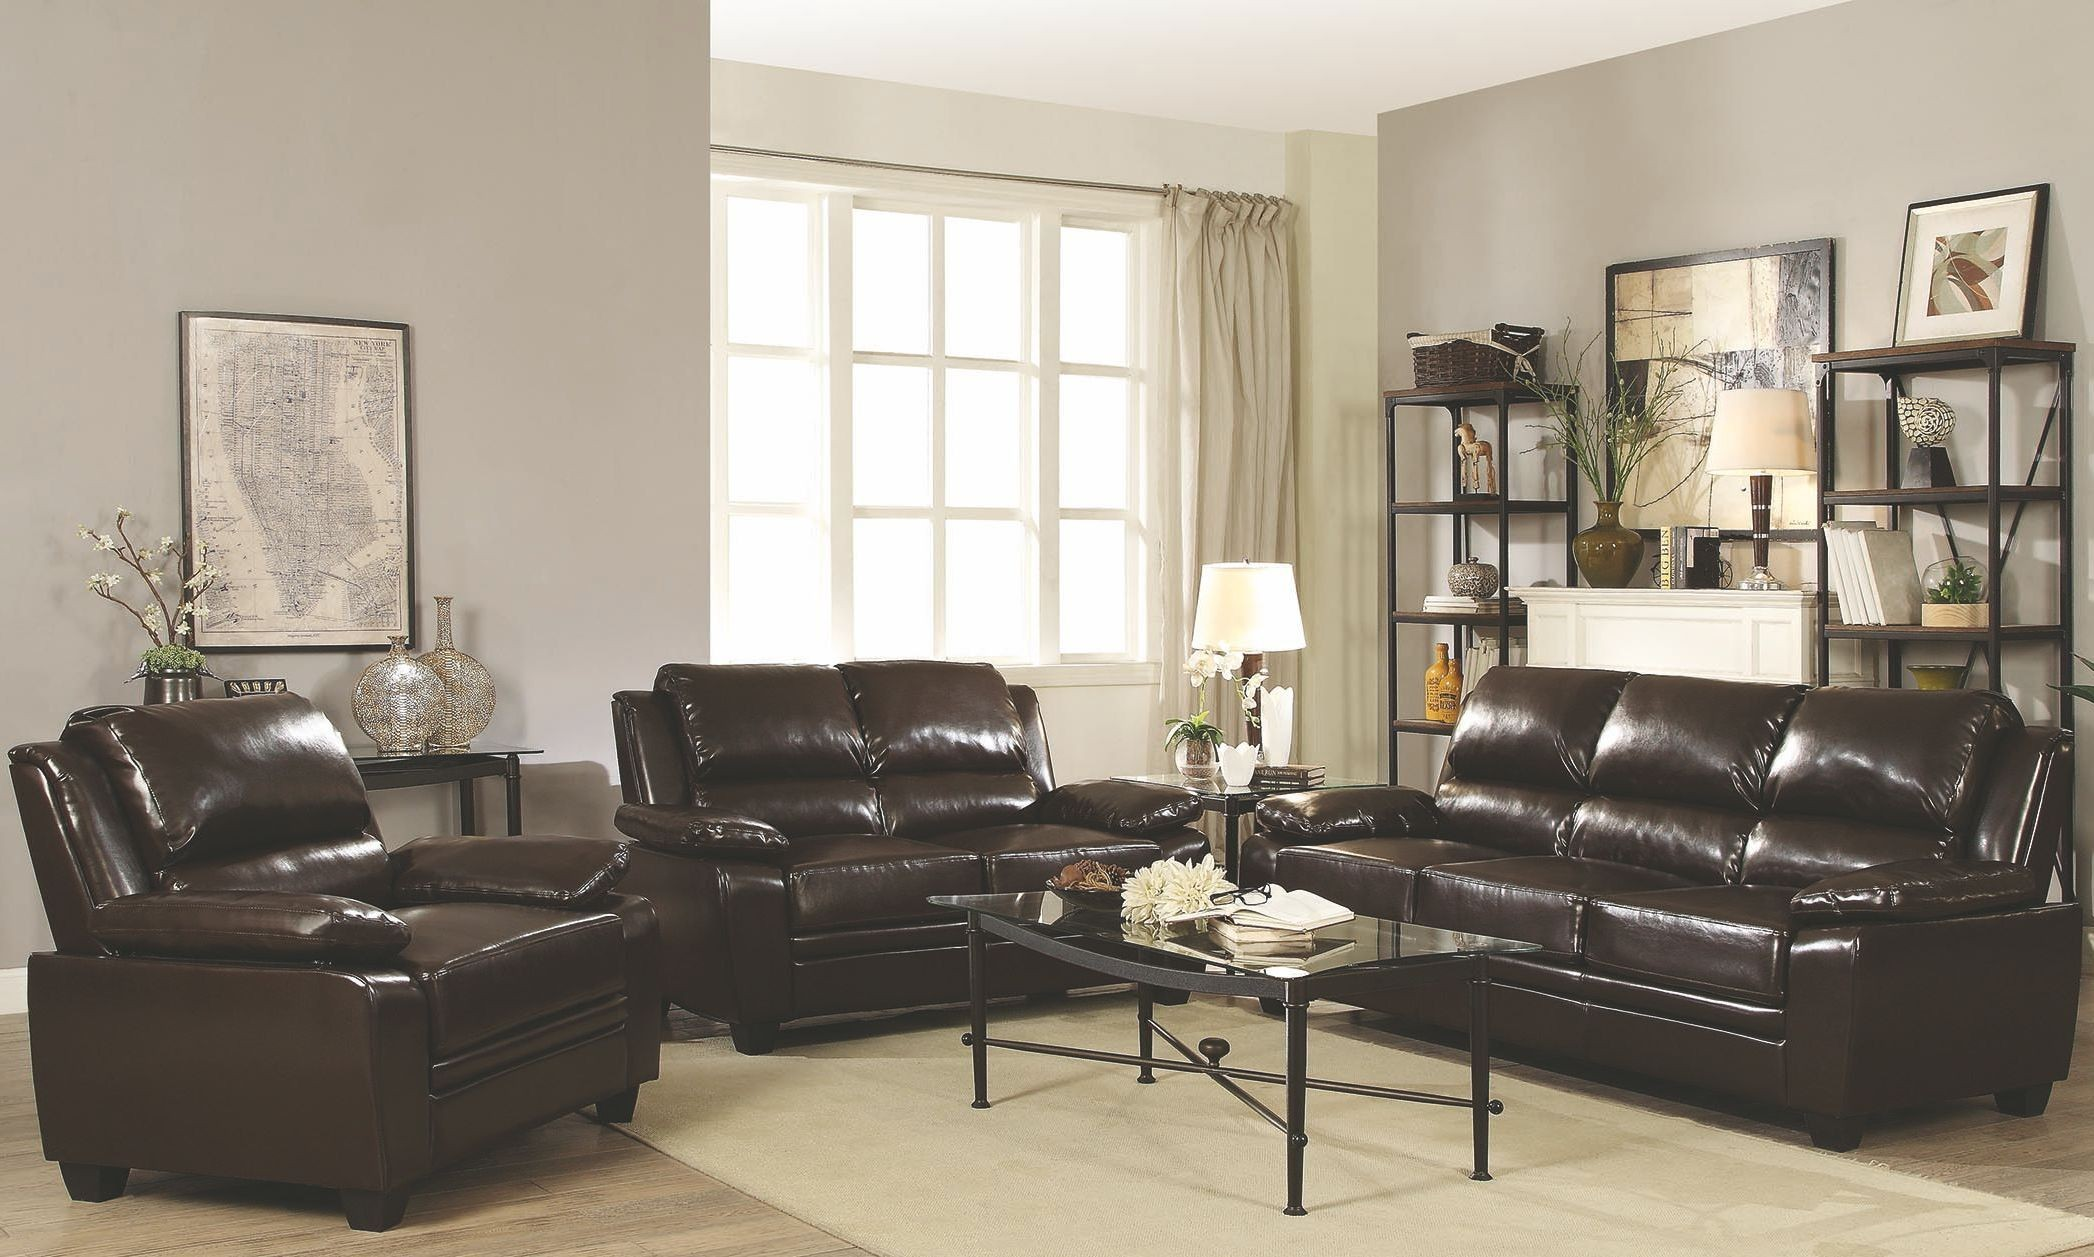 Gryffin dark brown living room set 505561 coaster furniture for Dark brown living room set